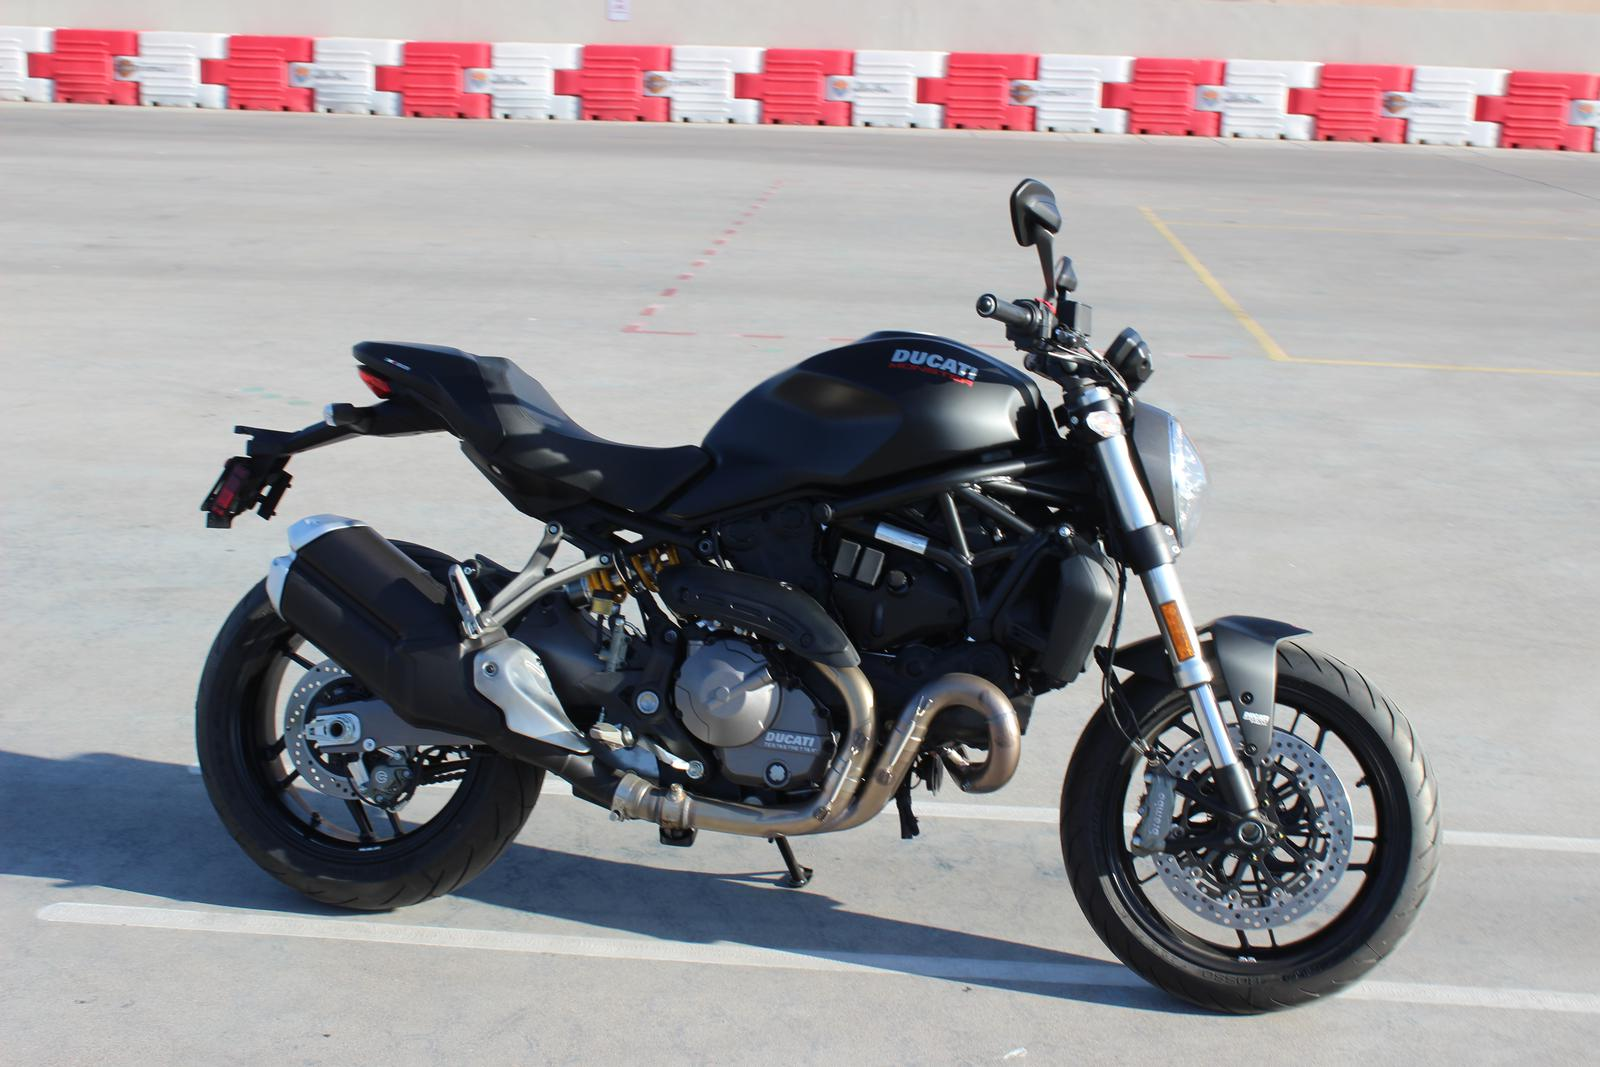 2018 Ducati Monster 821 - Dark Stealth / UP TO $750 IN FREE ...